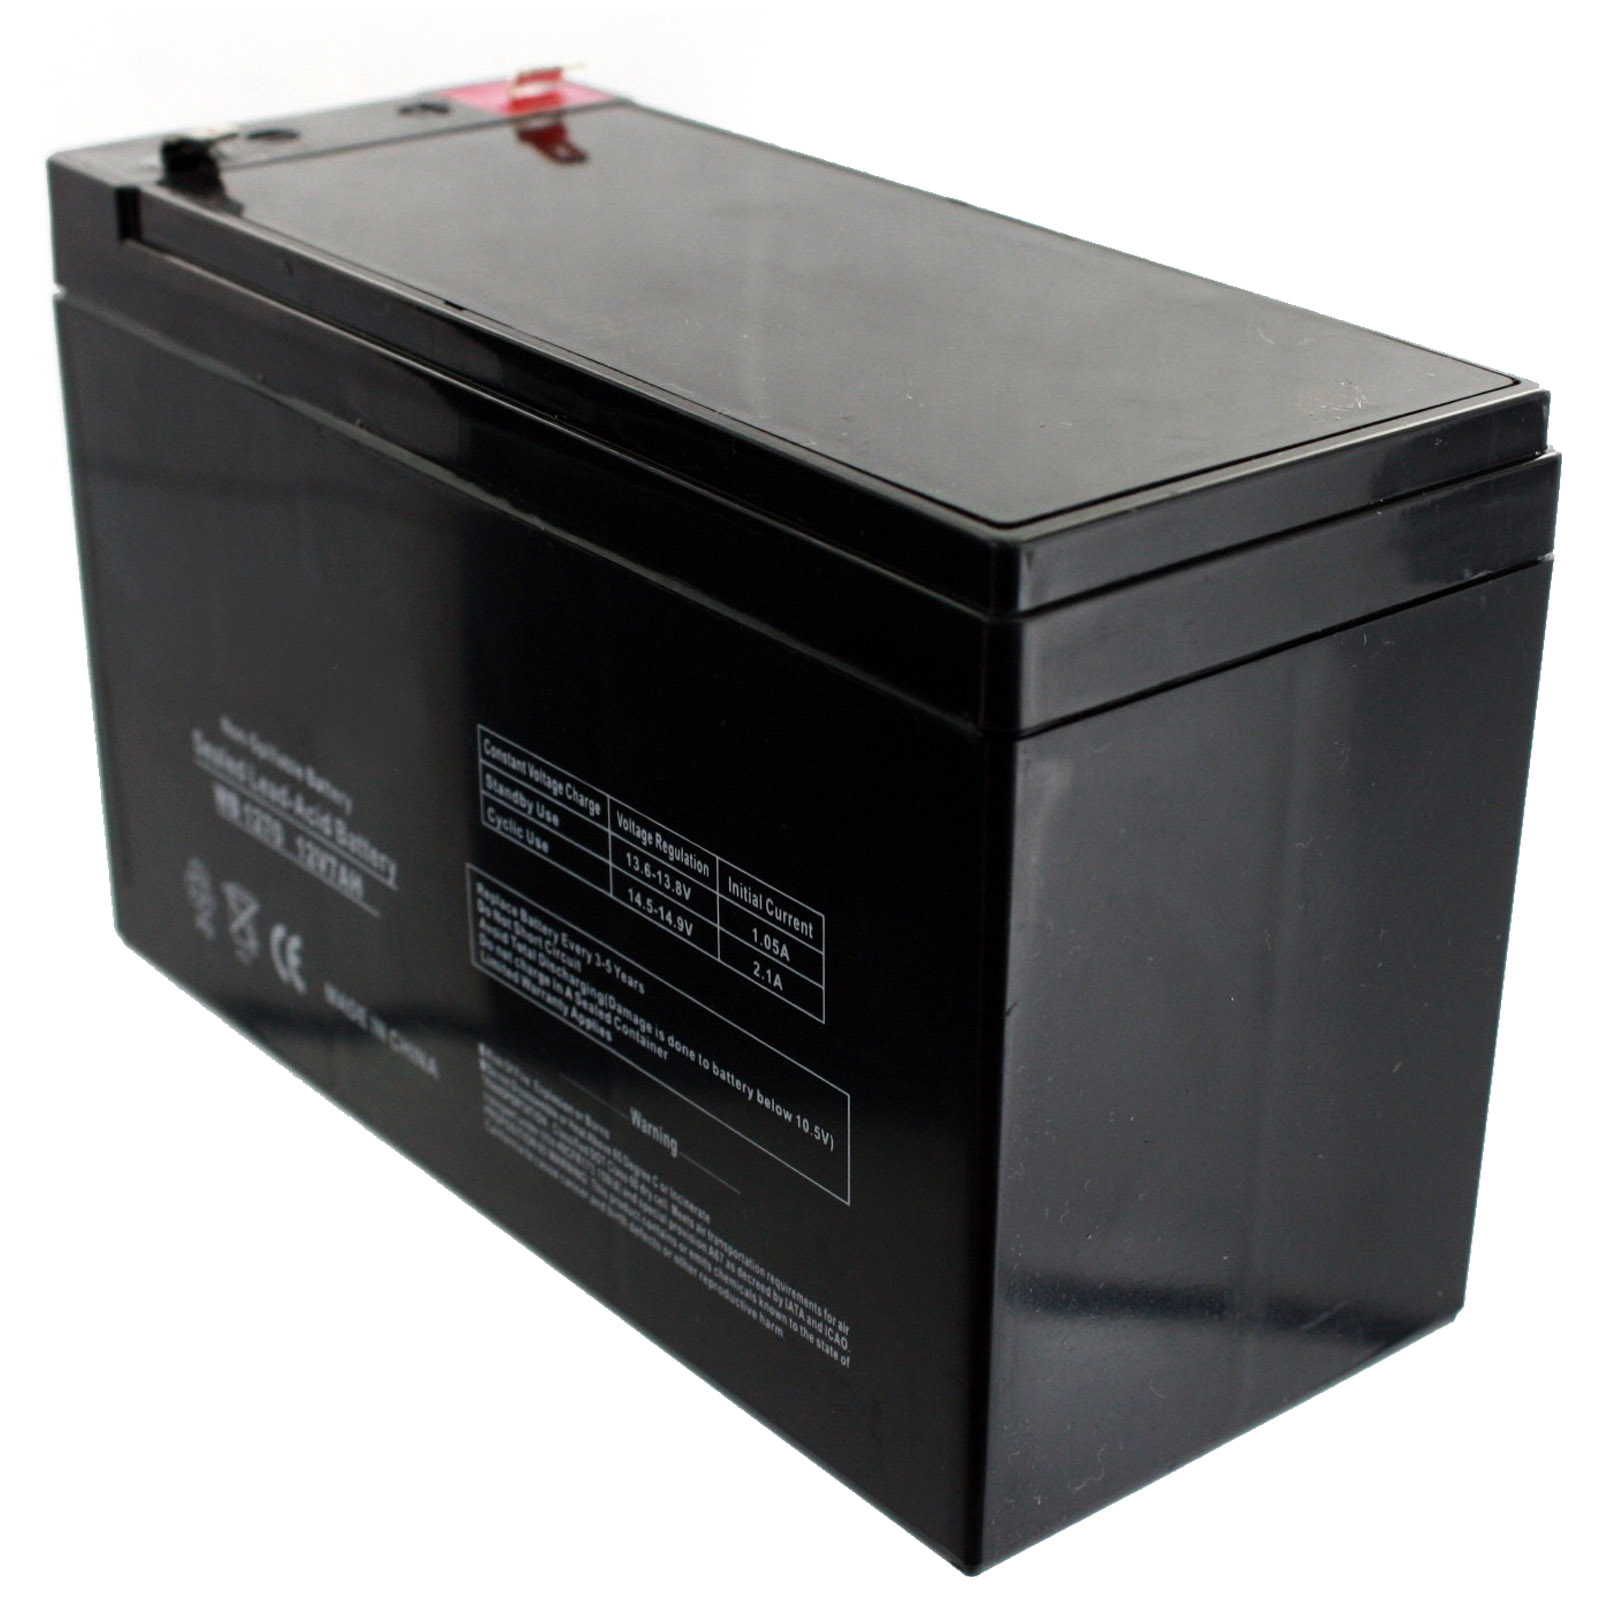 12v 7ah sla battery replaces gp1272 np7 12 bp7 12 npw36 12 ps 1270 ub1280 ebay. Black Bedroom Furniture Sets. Home Design Ideas